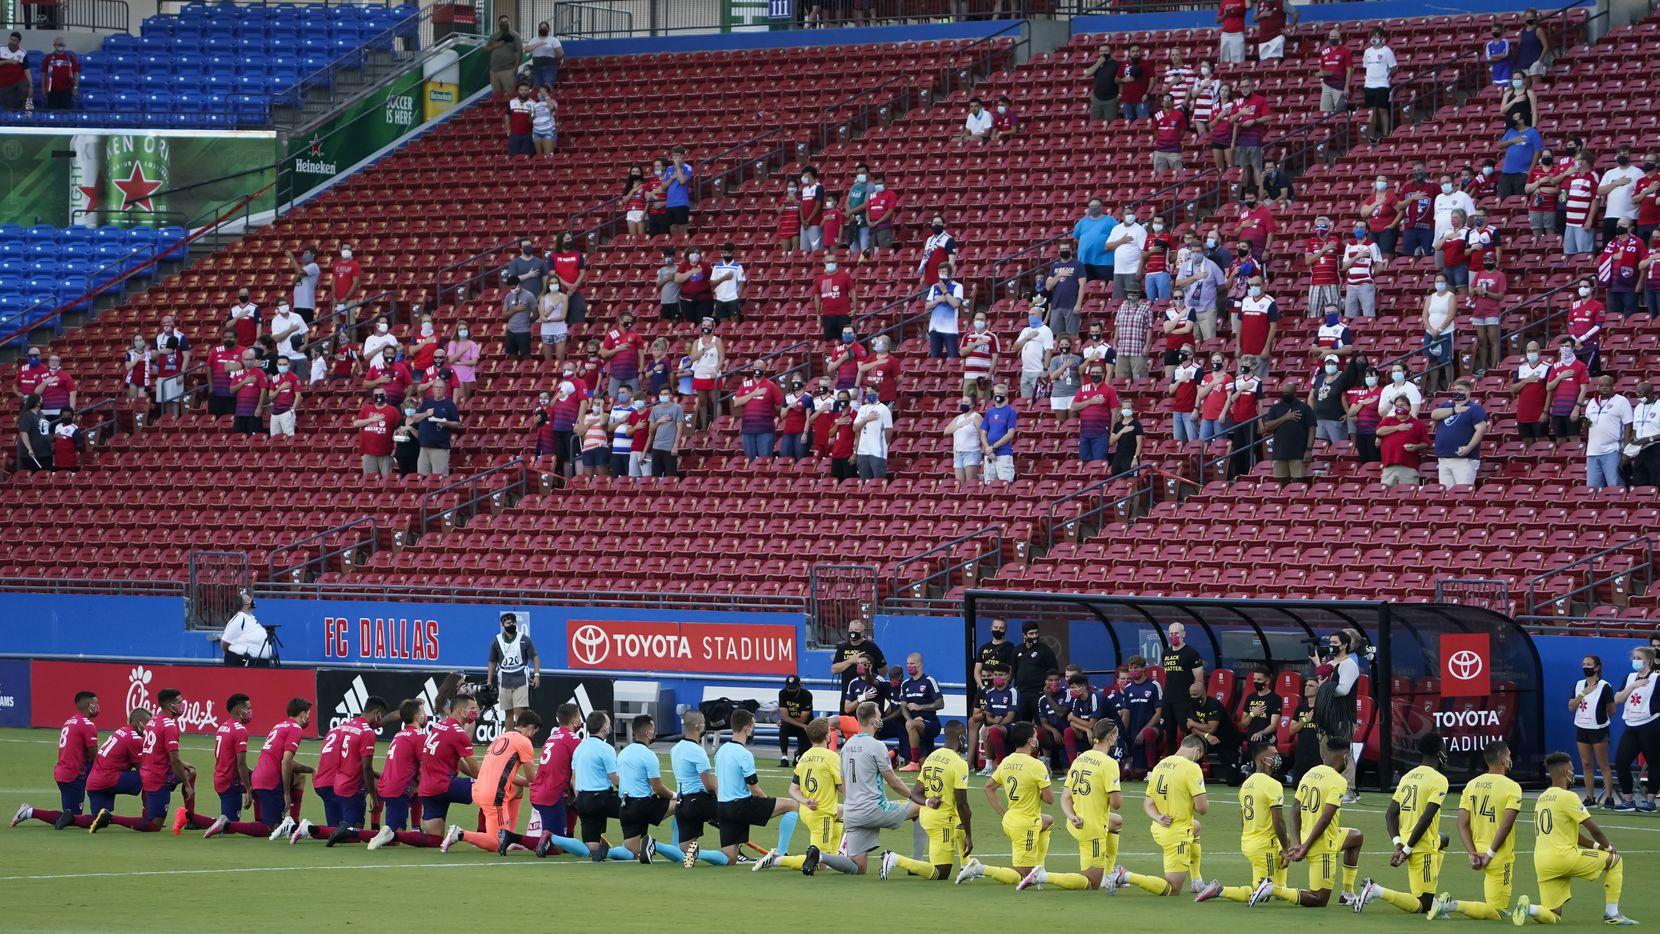 FC Dallas (left) and Nashville SC players kneel during the national anthem before an MLS soccer game at Toyota Stadium on Wednesday, Aug. 12, 2020, in Frisco, Texas. (Smiley N. Pool/The Dallas Morning News)